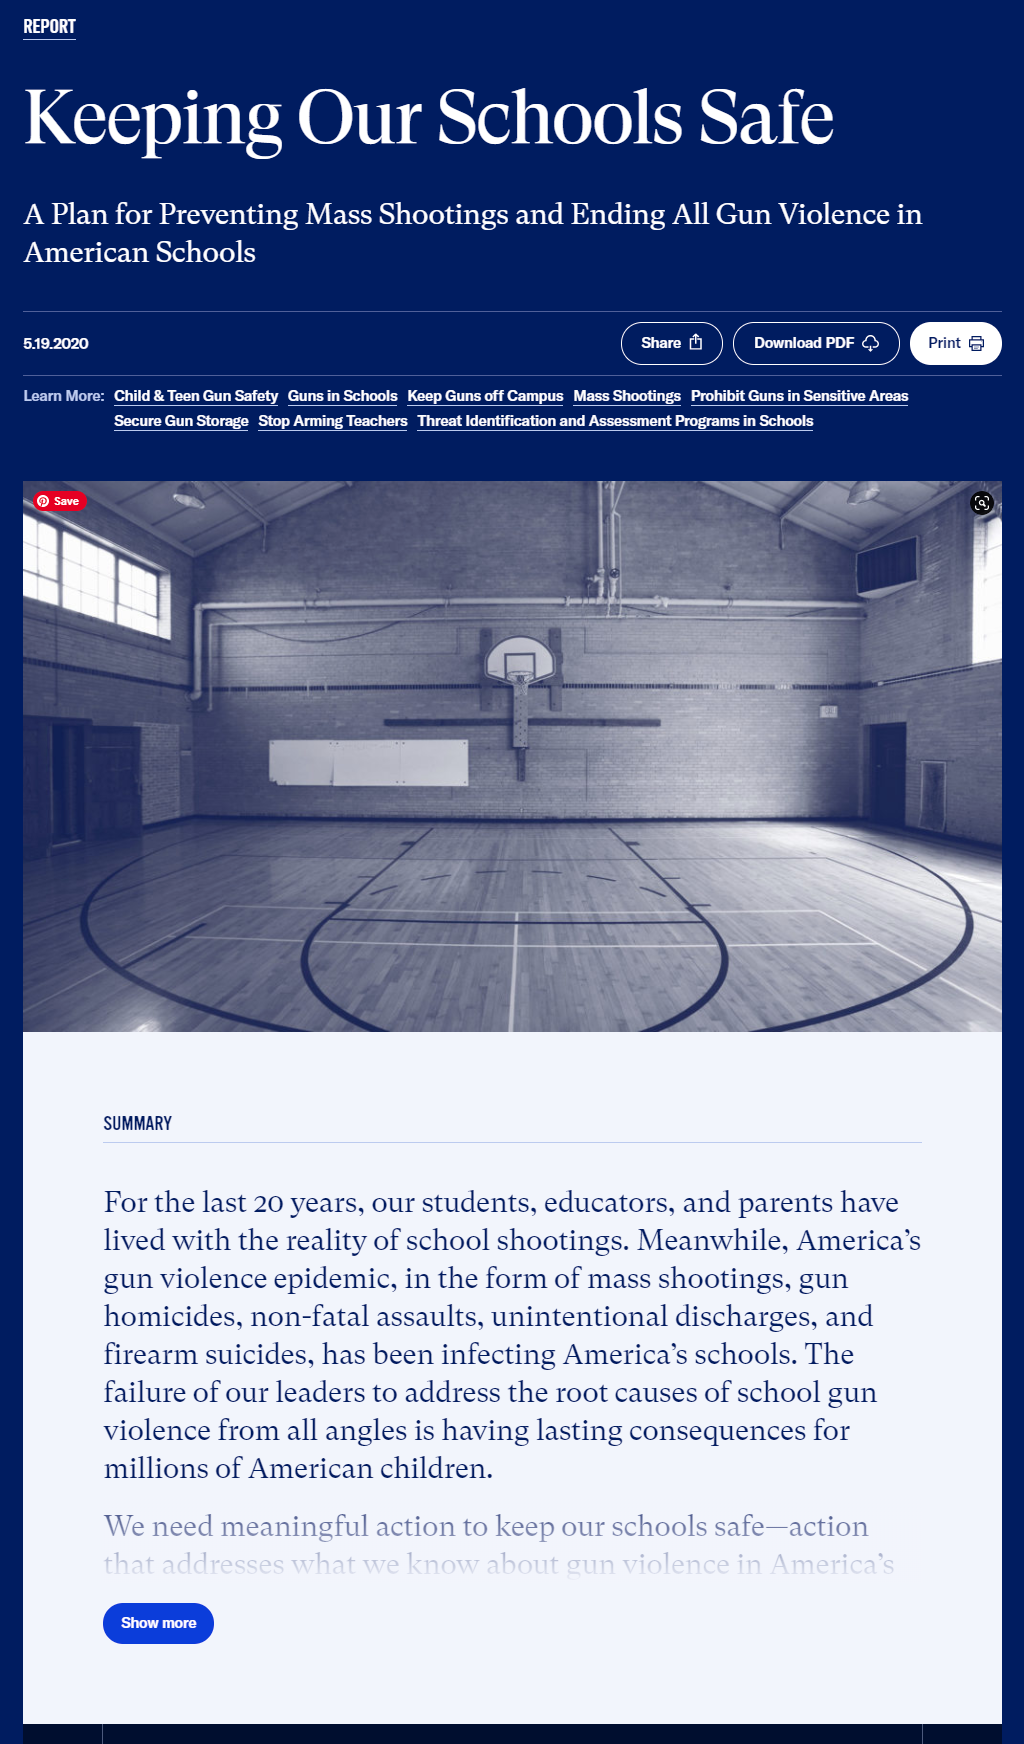 Keeping Our Schools Safe: A Plan for Preventing Mass Shootings and Ending All Gun Violence in American Schools